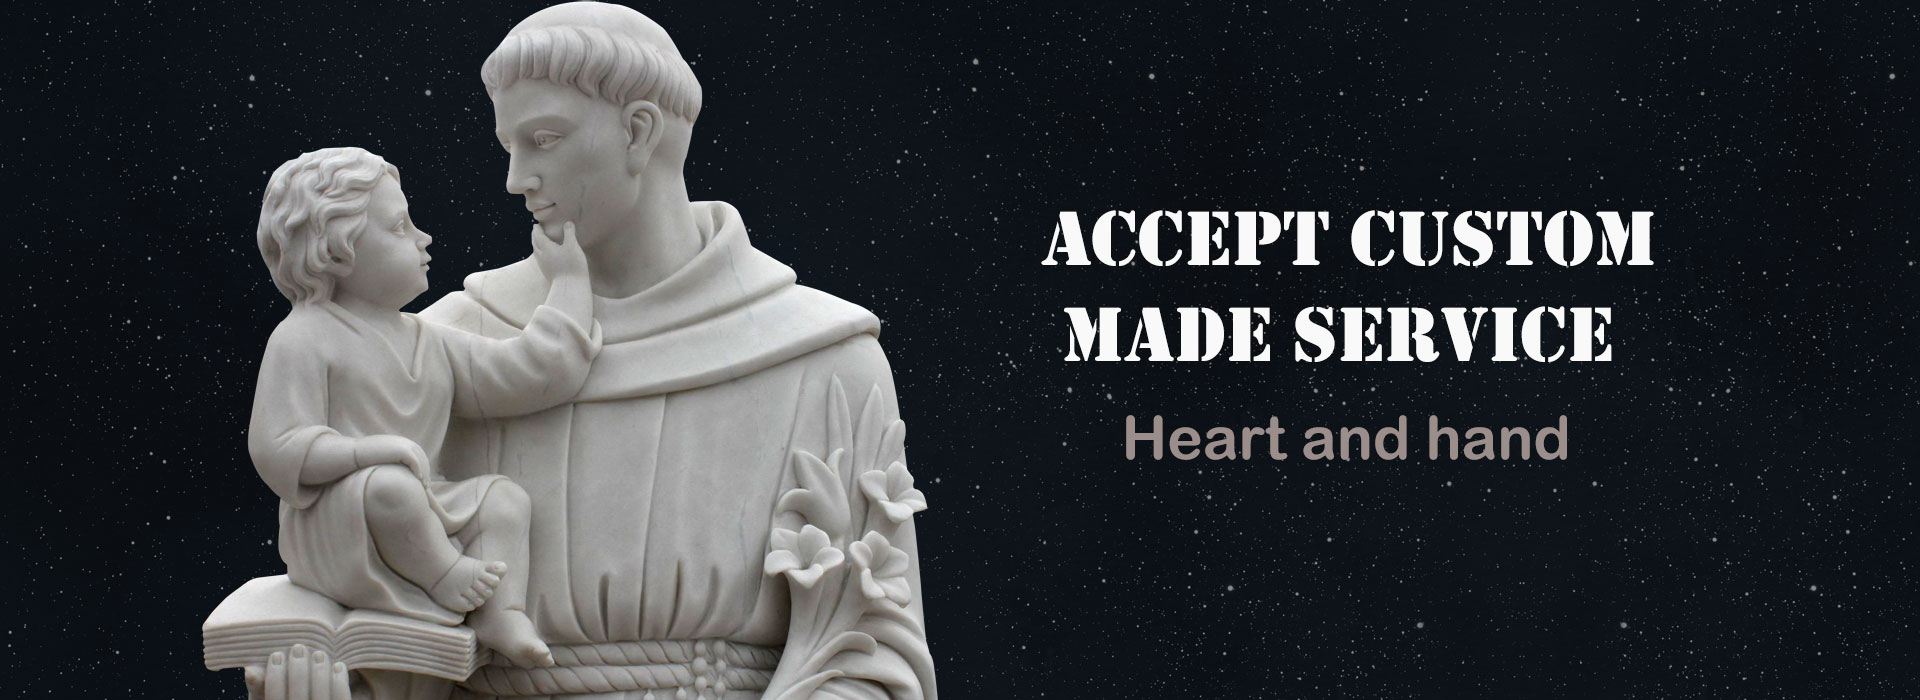 2018 hot sale marble craving statues saint Anthony statue designs on discount sale Australia